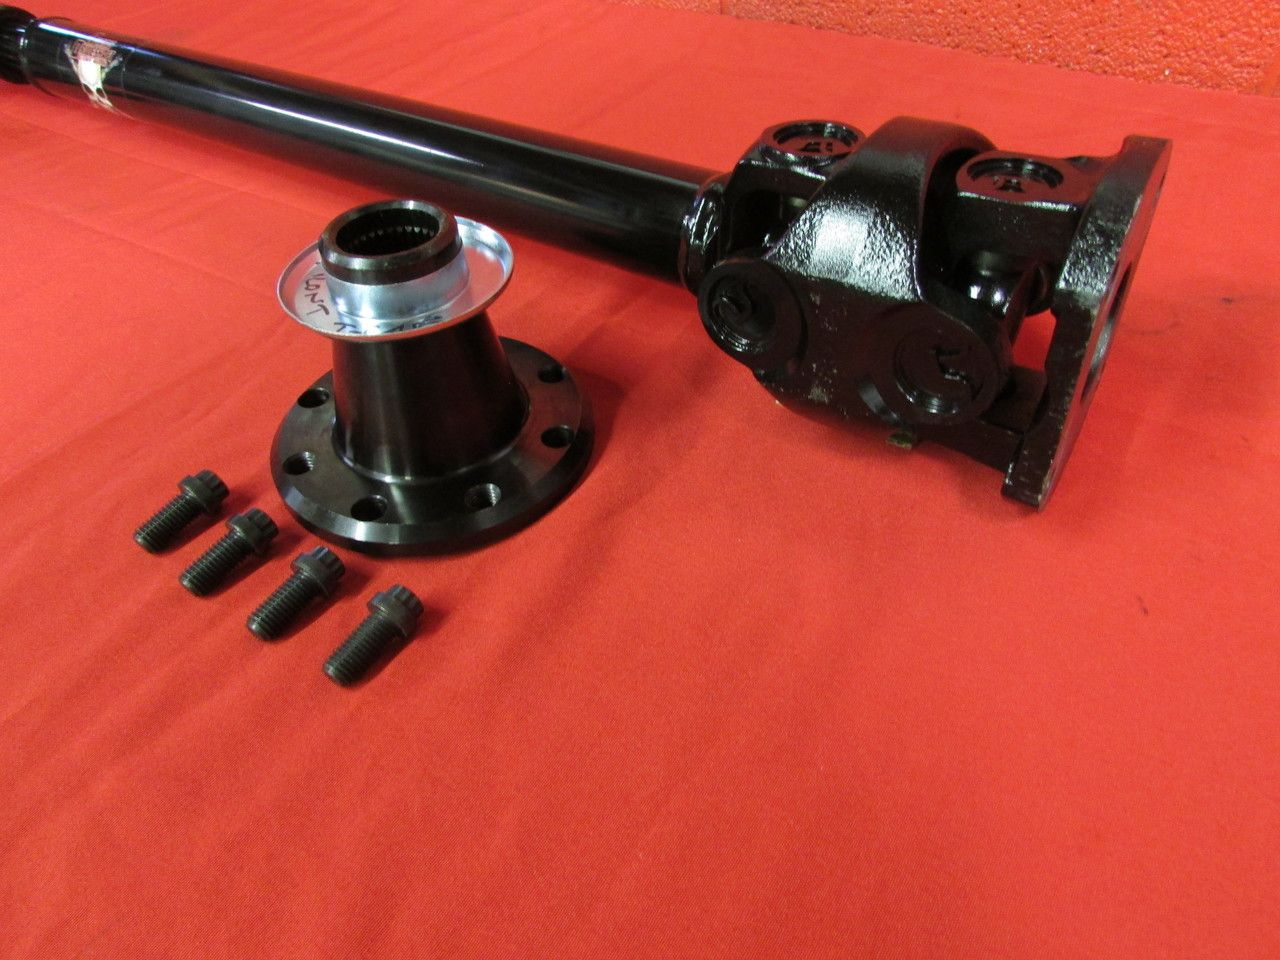 Adams Driveshaft Jk Front 1350 Cv Driveshaft Extreme Duty Series Solid U Joint Joint Dyson Vacuum Solid